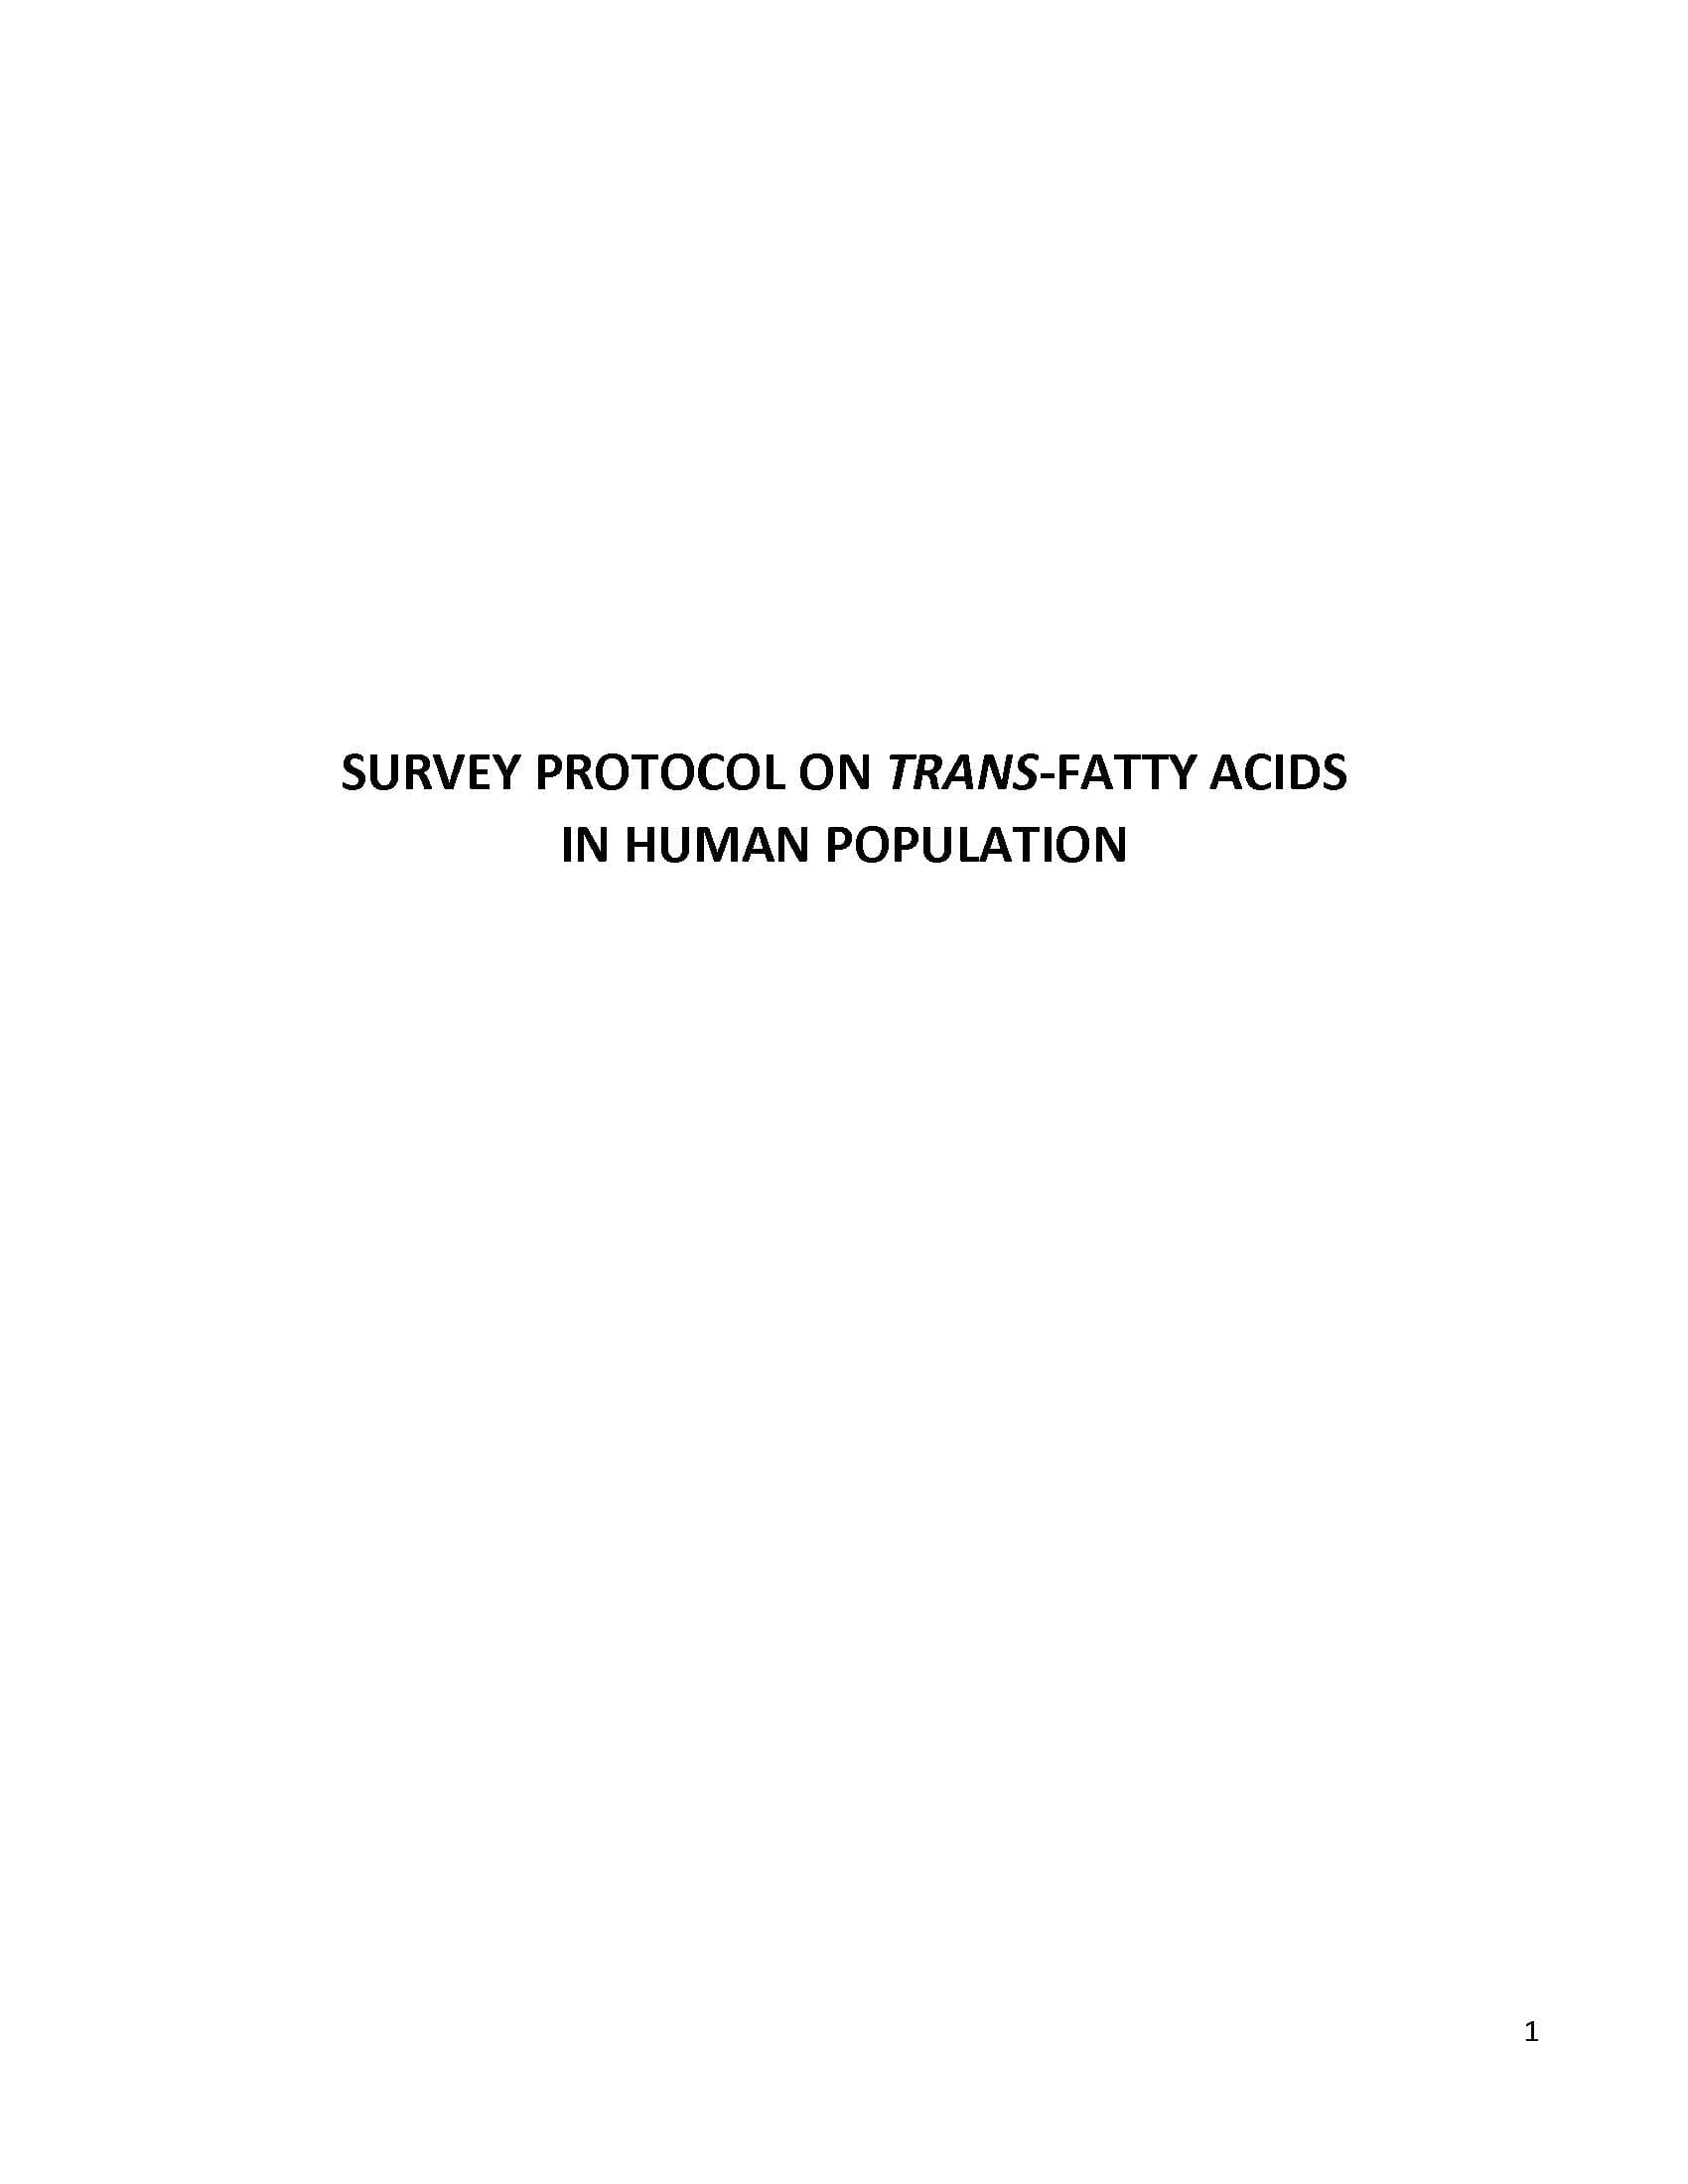 Protocol: Surveying Trans-Fatty Acids in Human Population